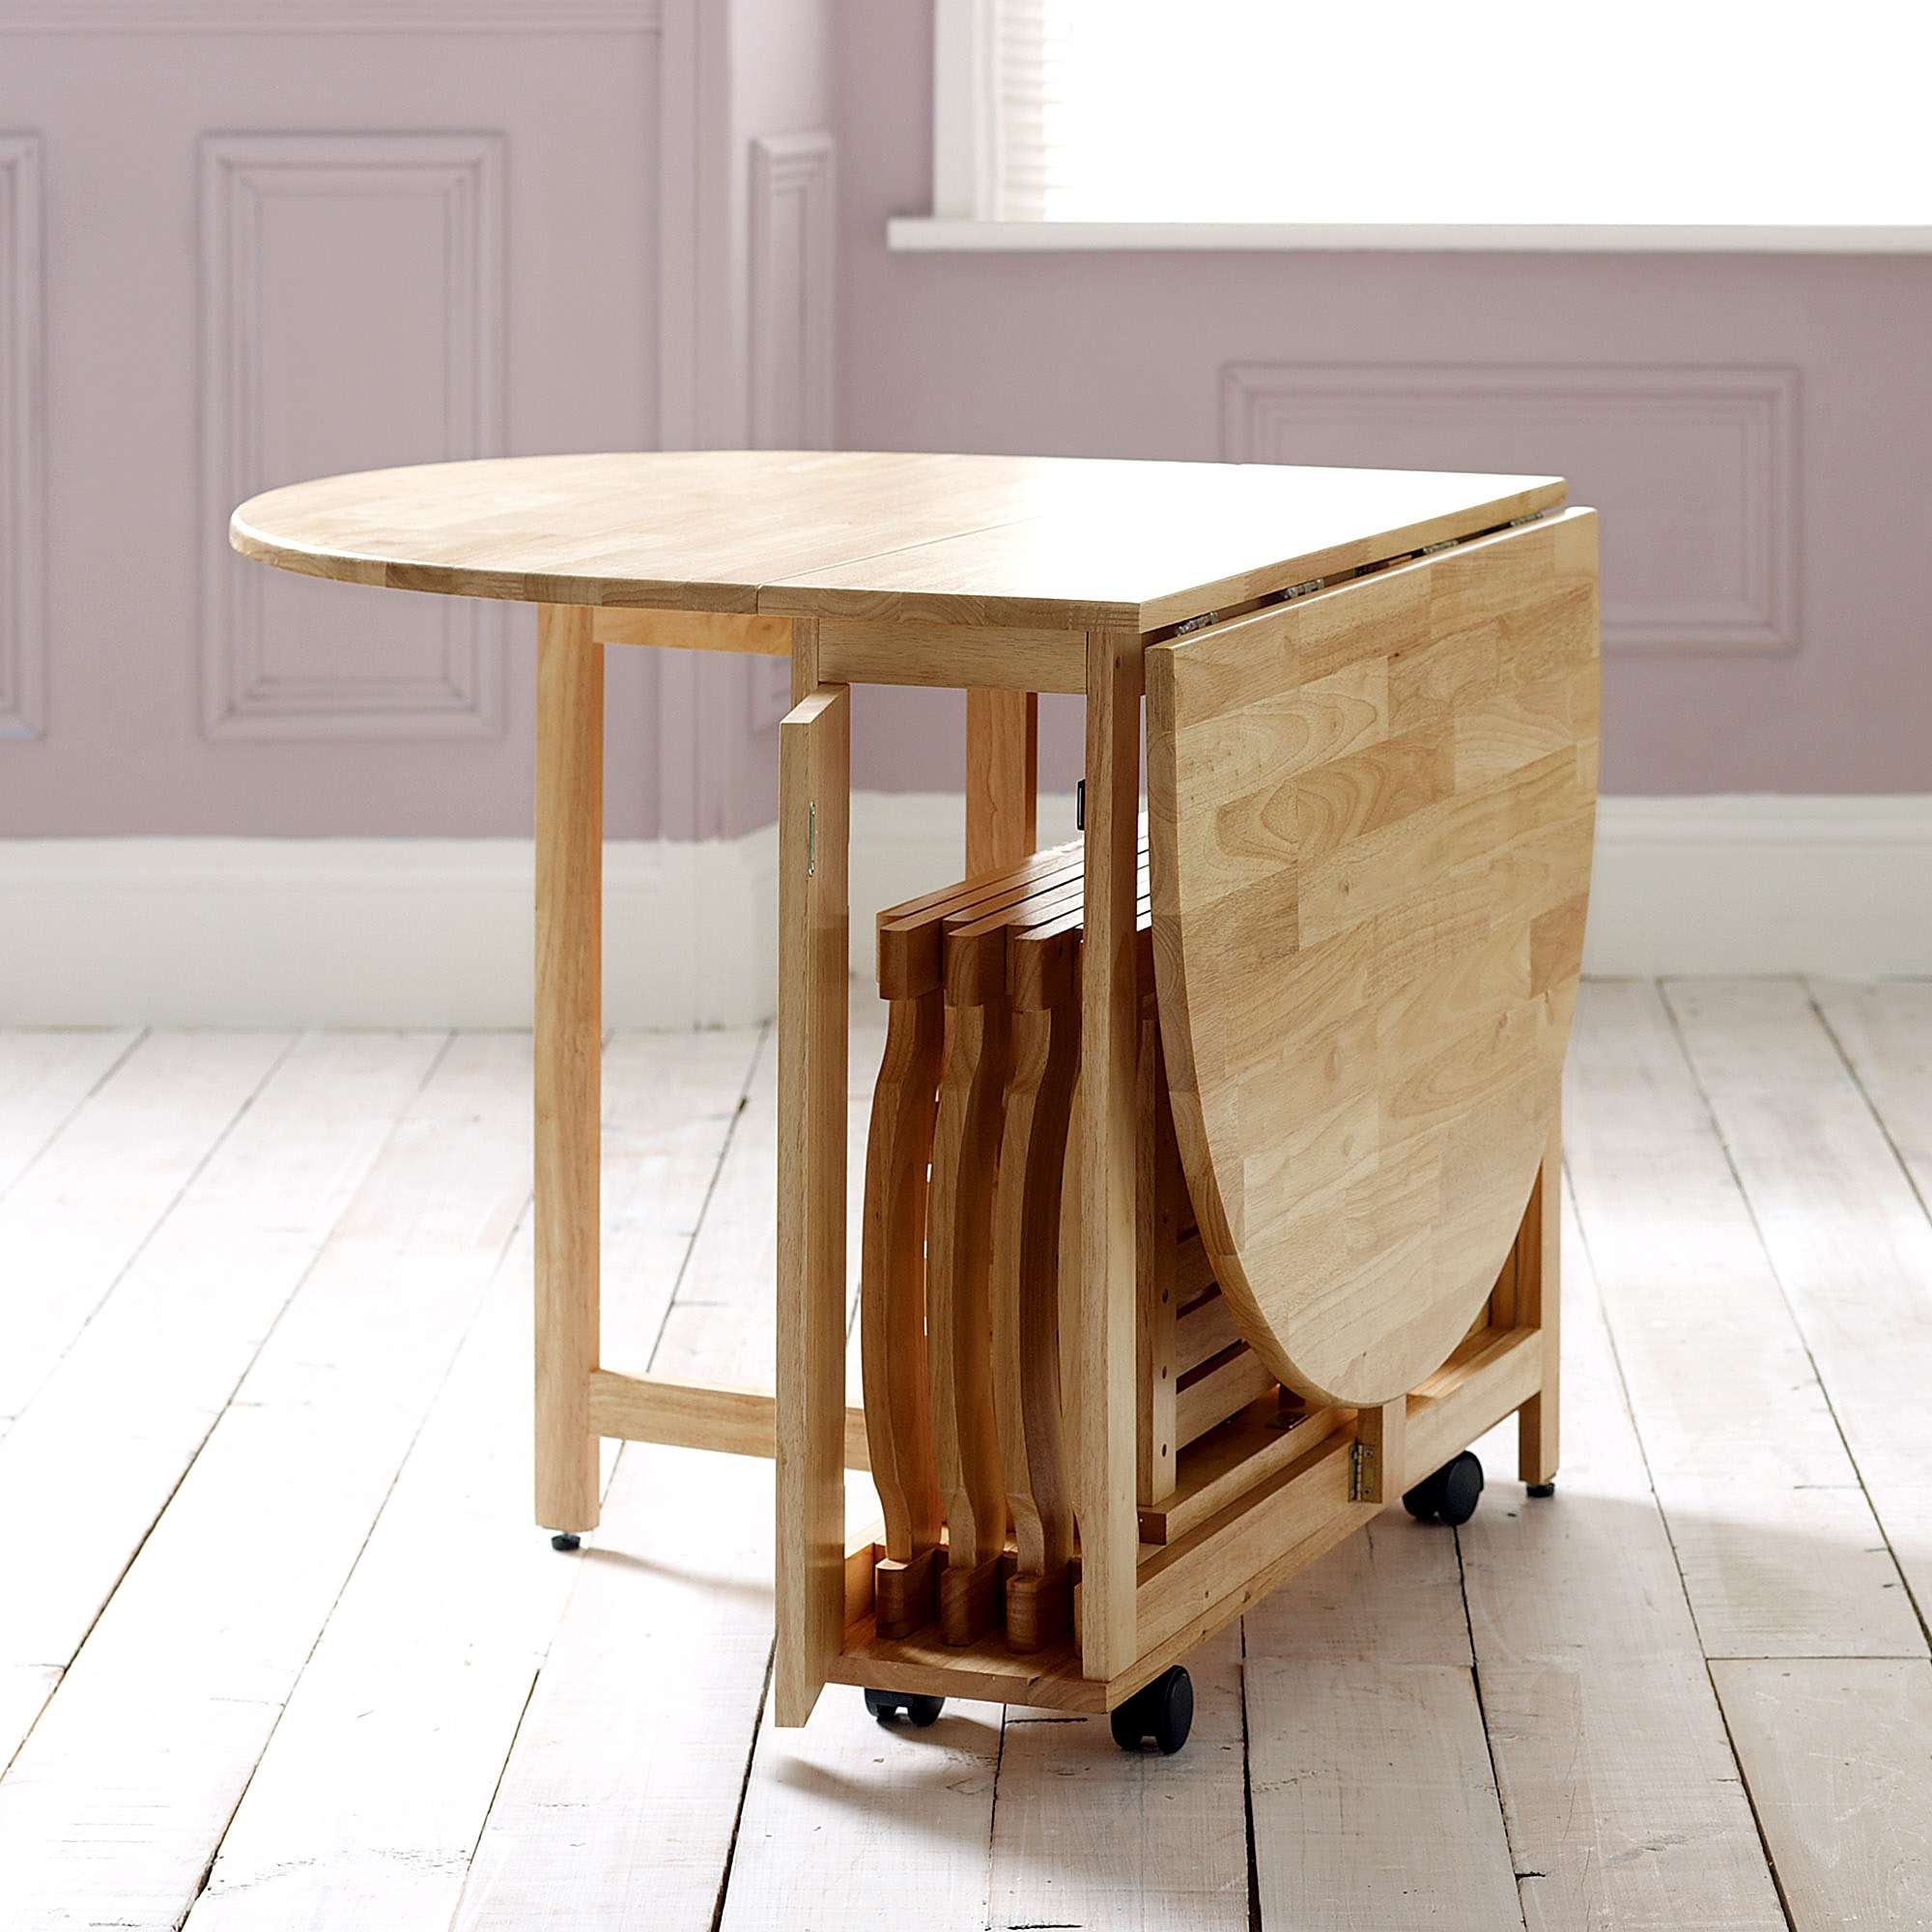 Small Dining Tables For 2 For Fashionable Choose A Folding Dining Table For A Small Space – Adorable Home (View 20 of 25)